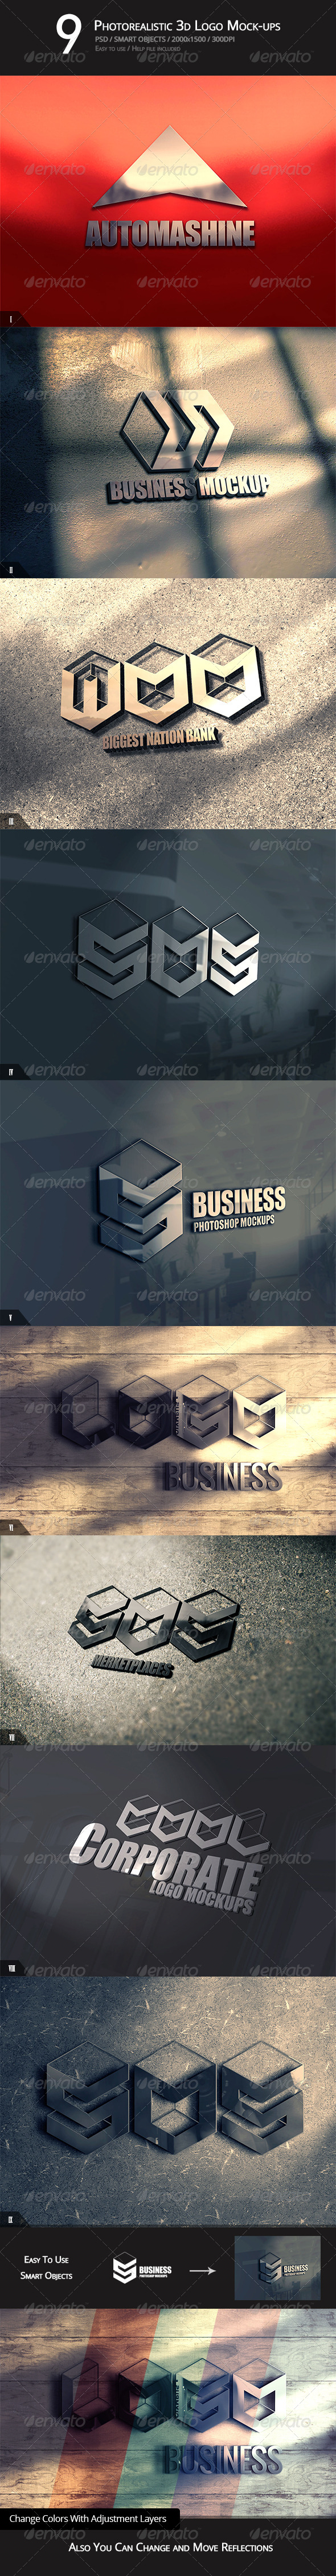 GraphicRiver 9 Photorealistic 3D Logo Mock-ups 5286185